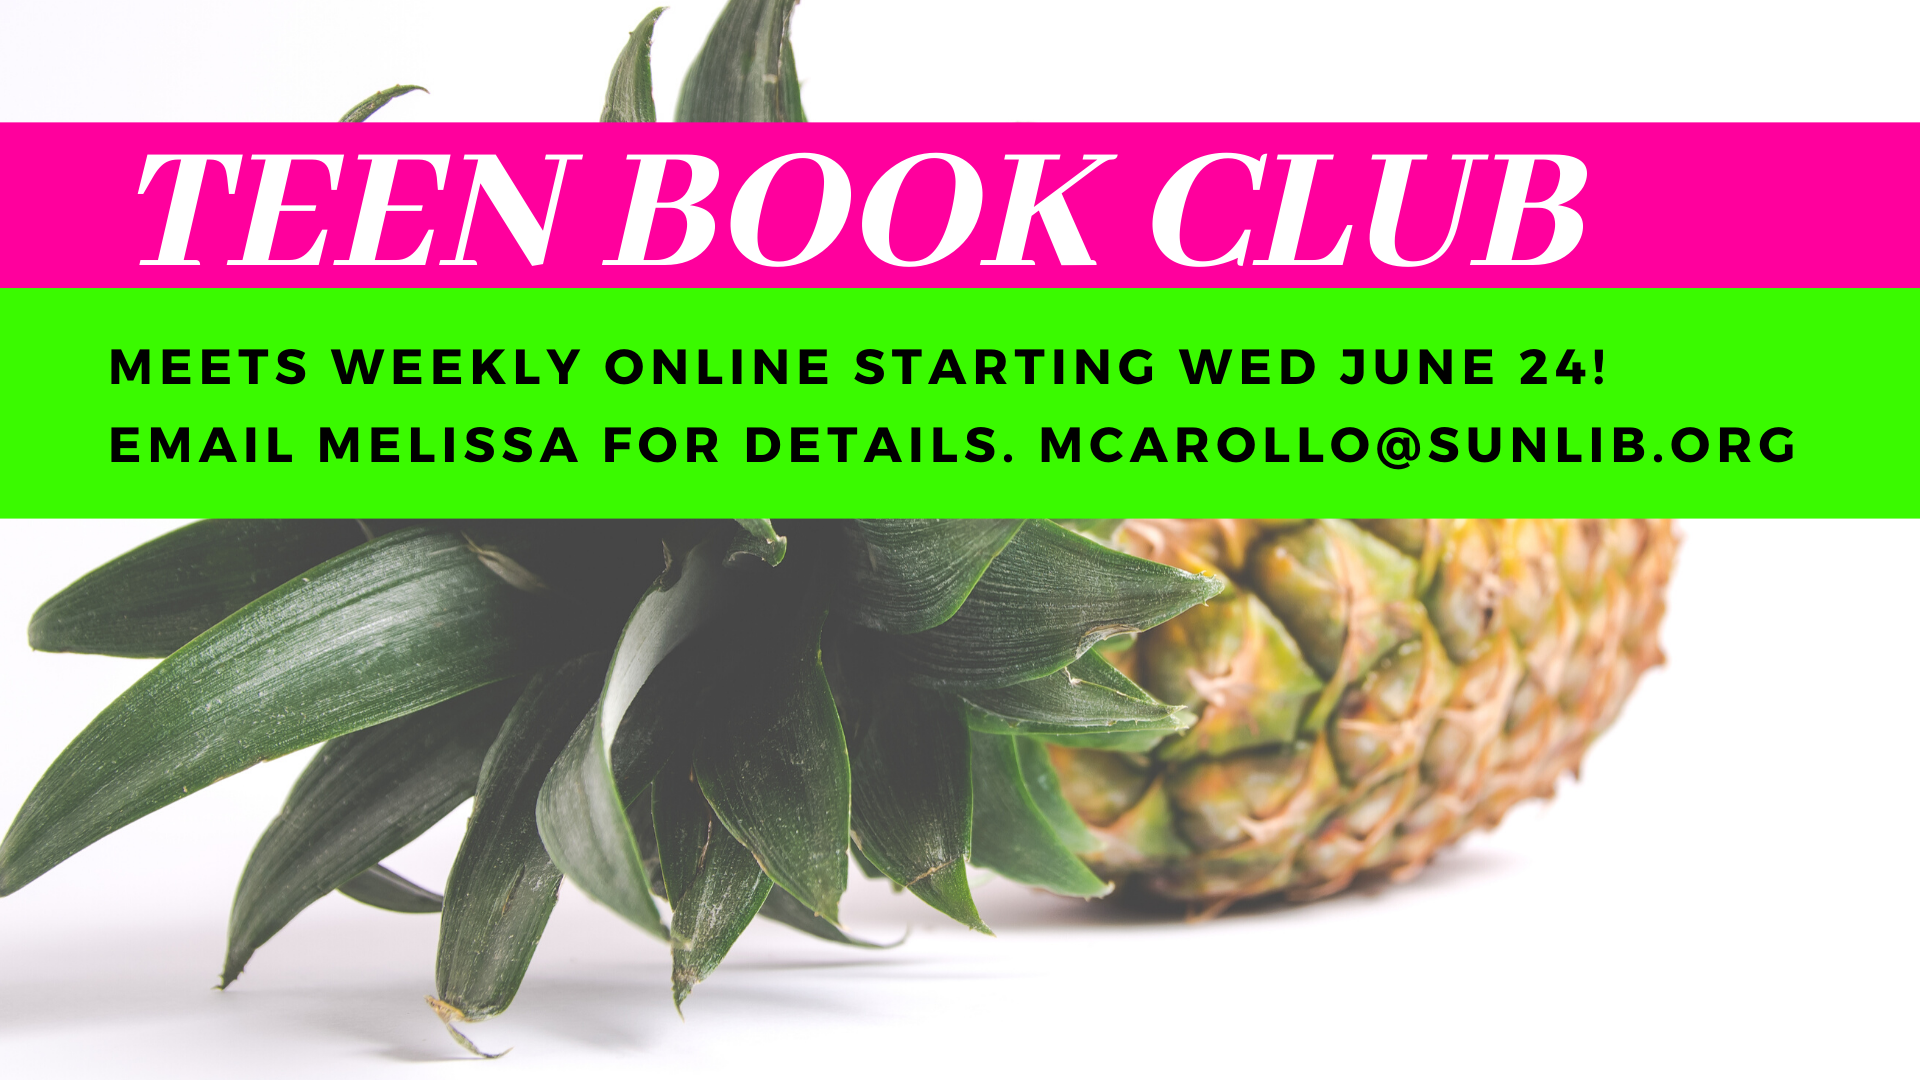 poster advertising teen book club featuring a picture of a pineapple